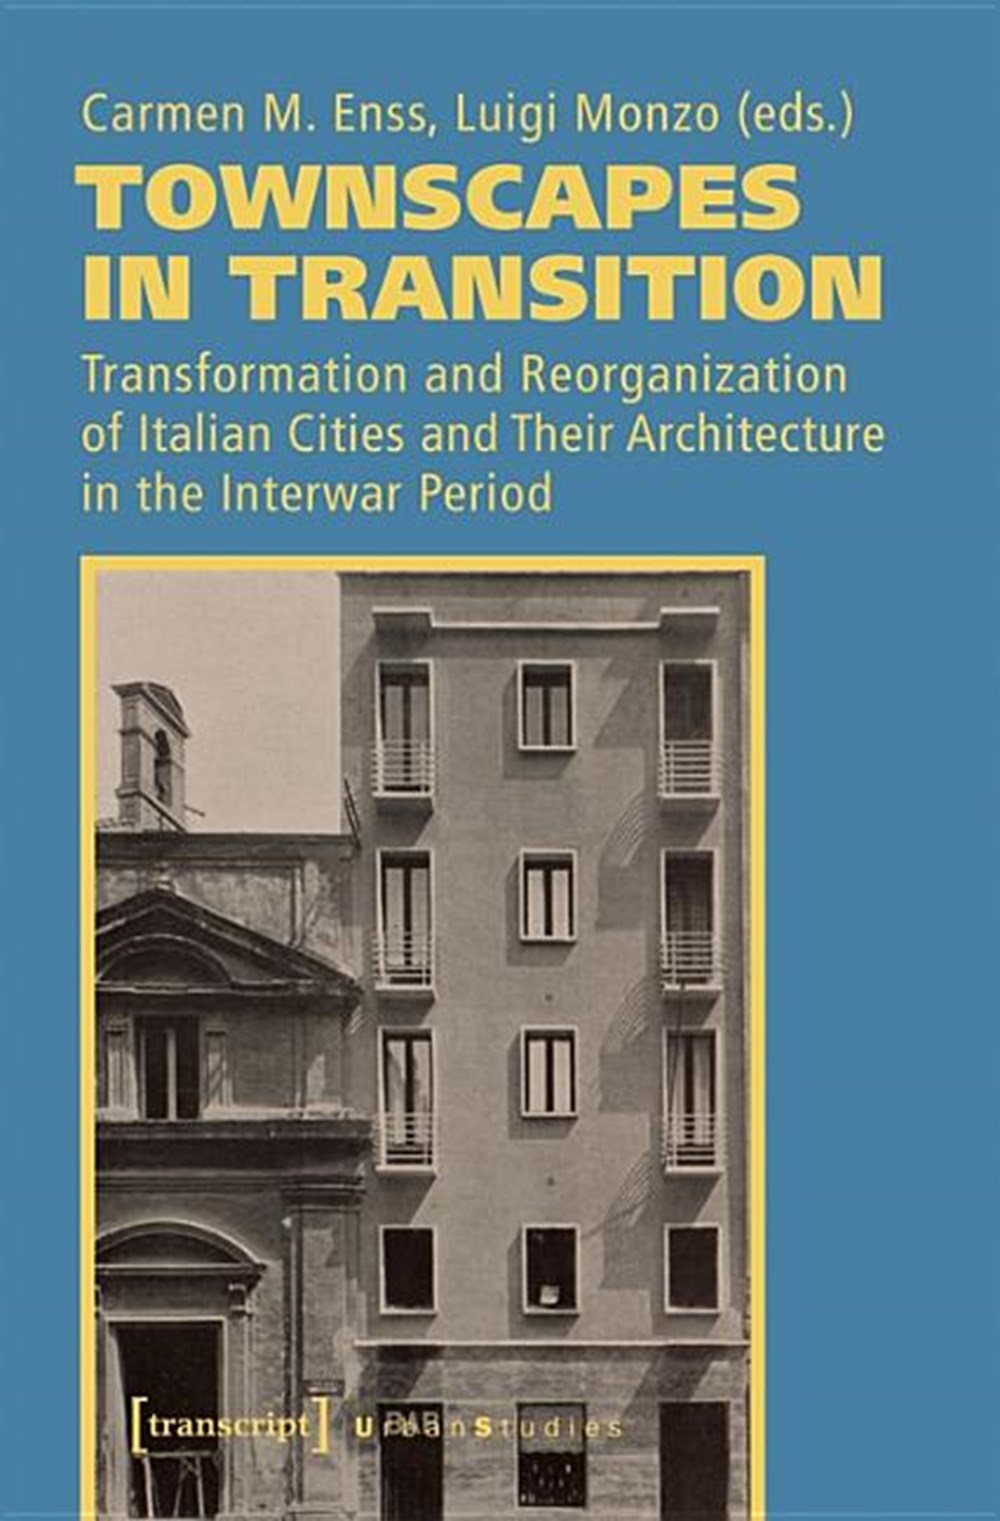 Townscapes in Transition Transformation and Reorganization of Italian Cities and Their Architecture